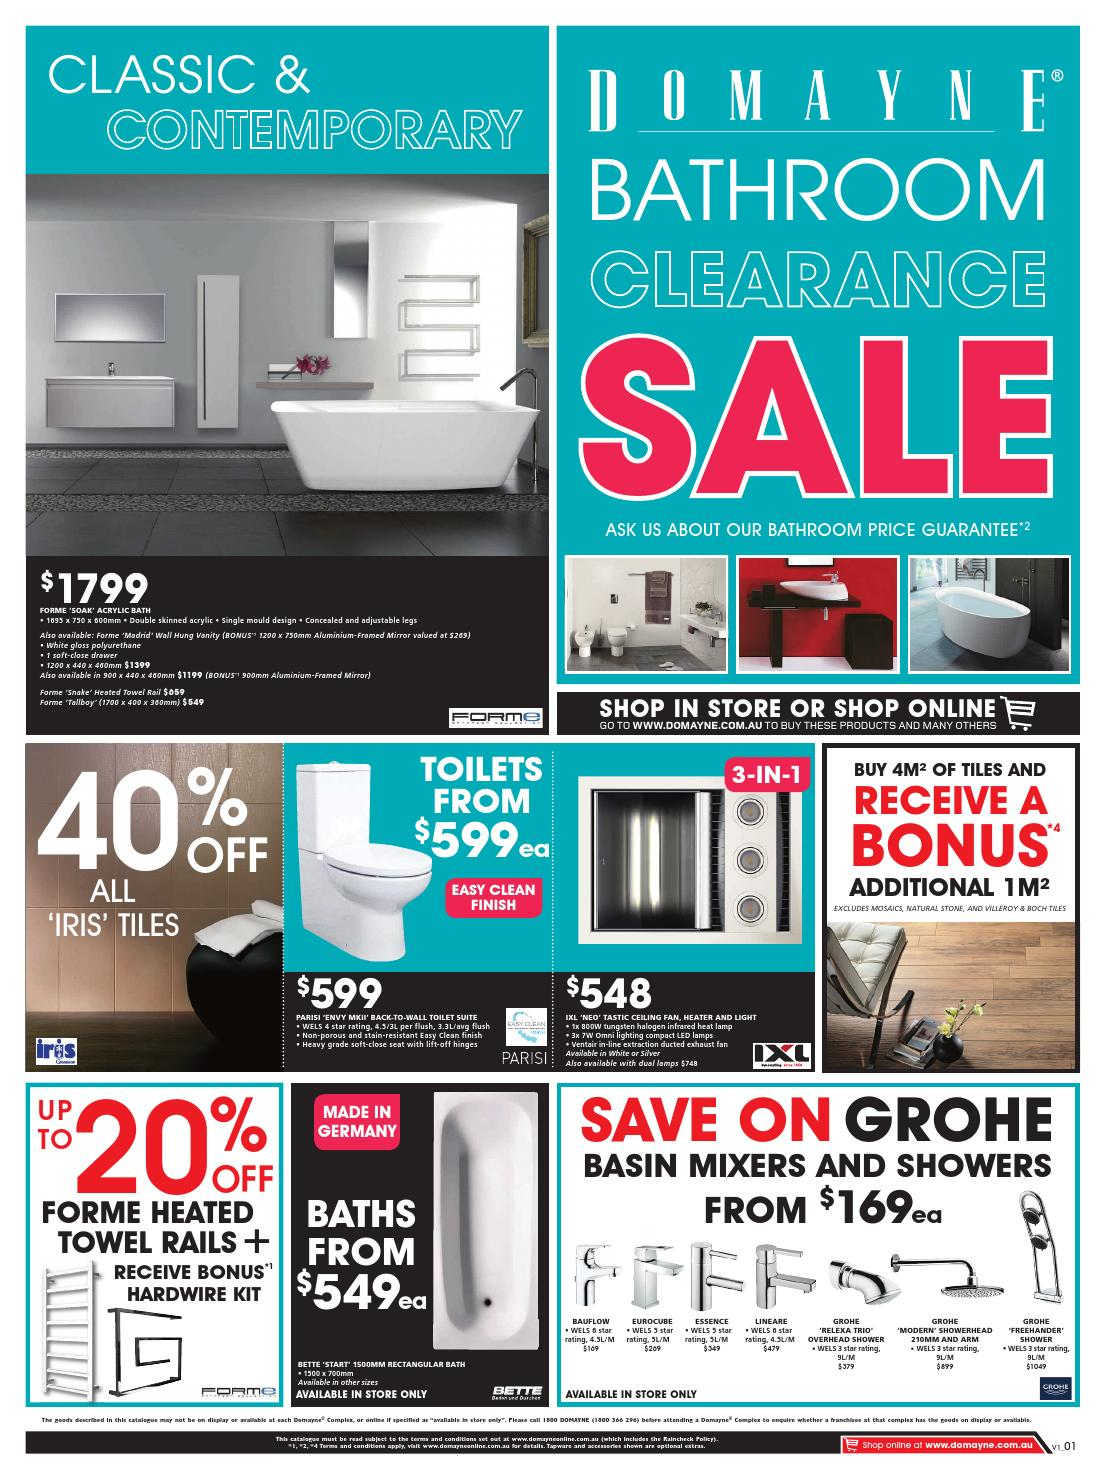 Domayne Bathroom Clearance Sale By Domayne Issuu